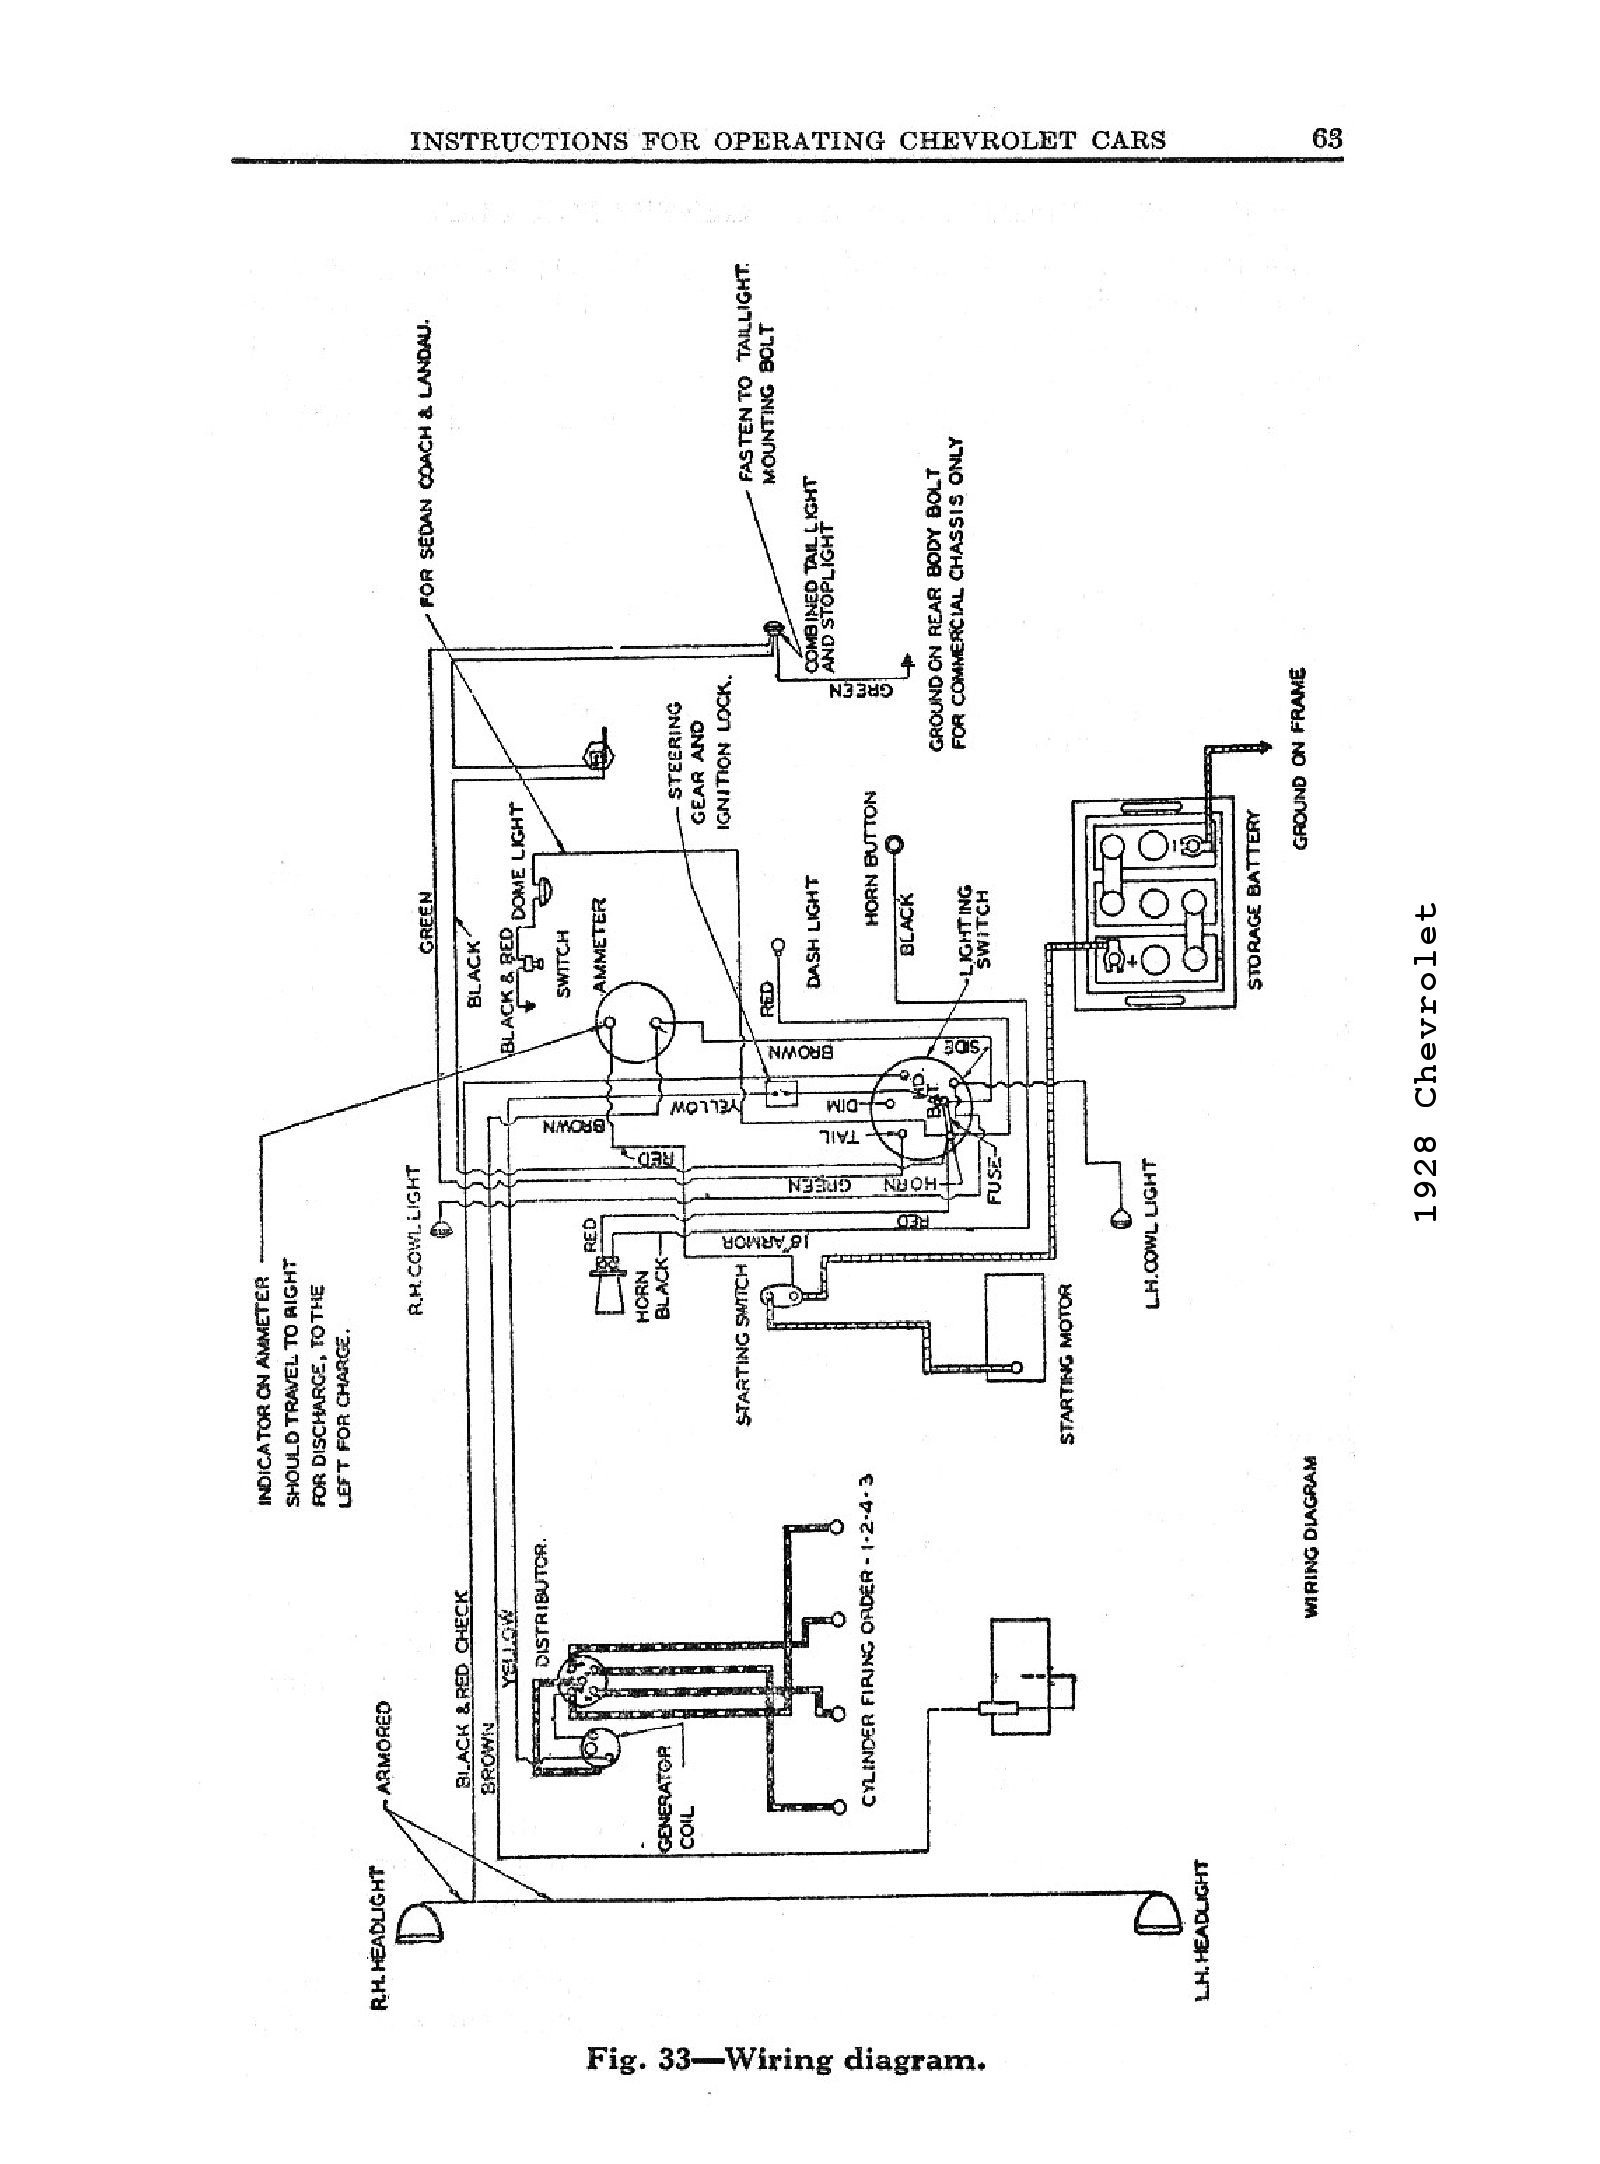 1963 Vw Beetle Wiper Motor Wiring Diagram. Vw Beetle